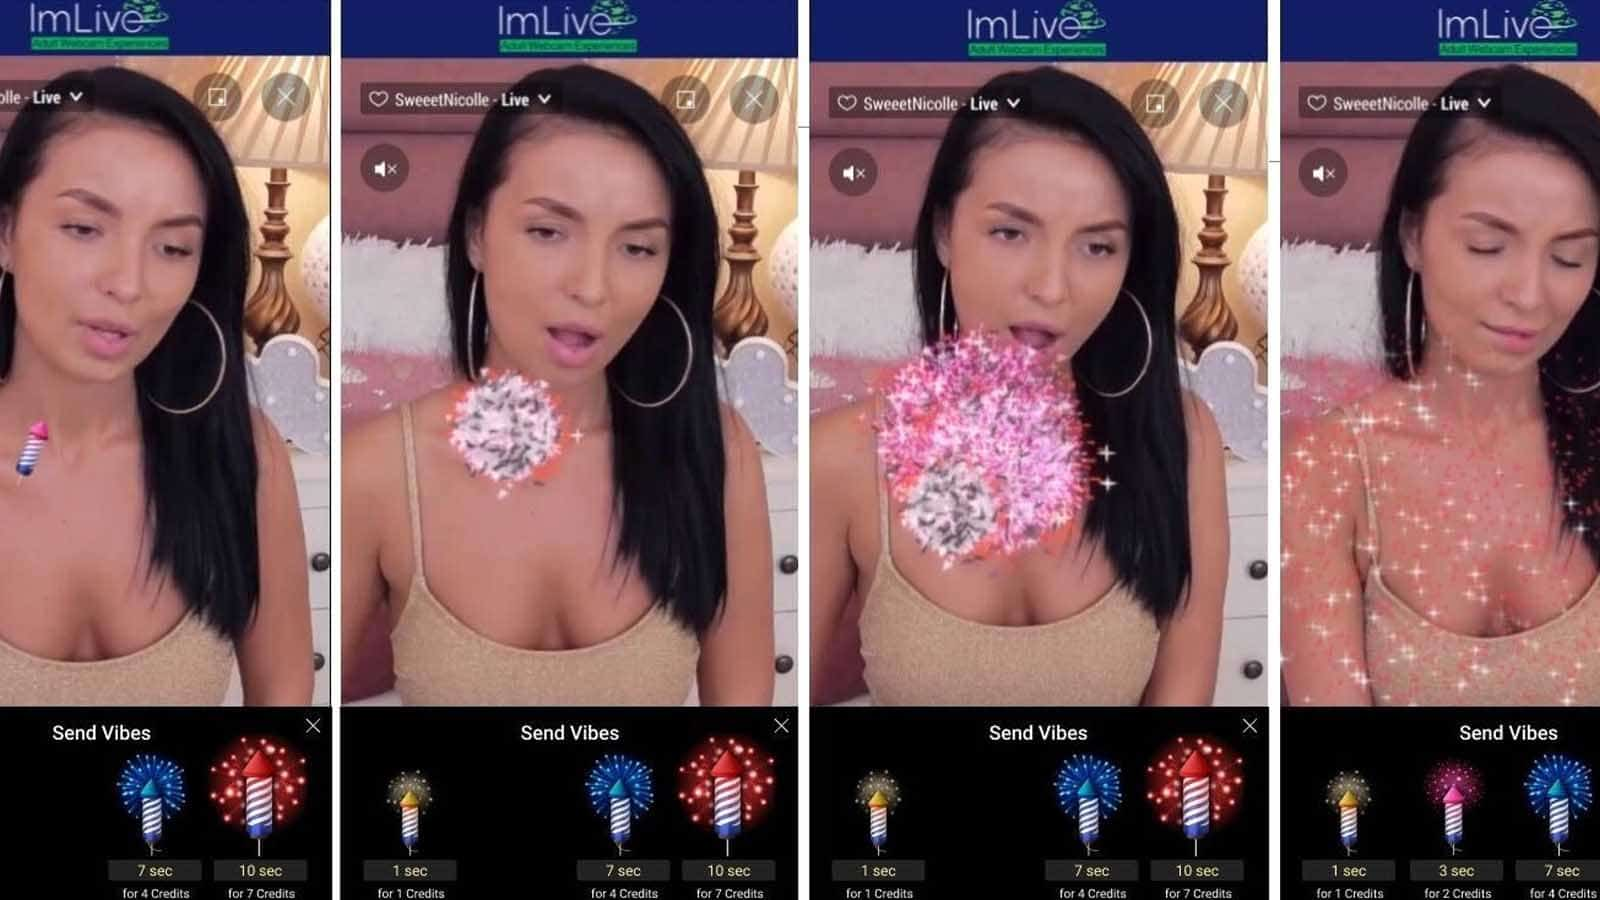 imlive fireworks feature